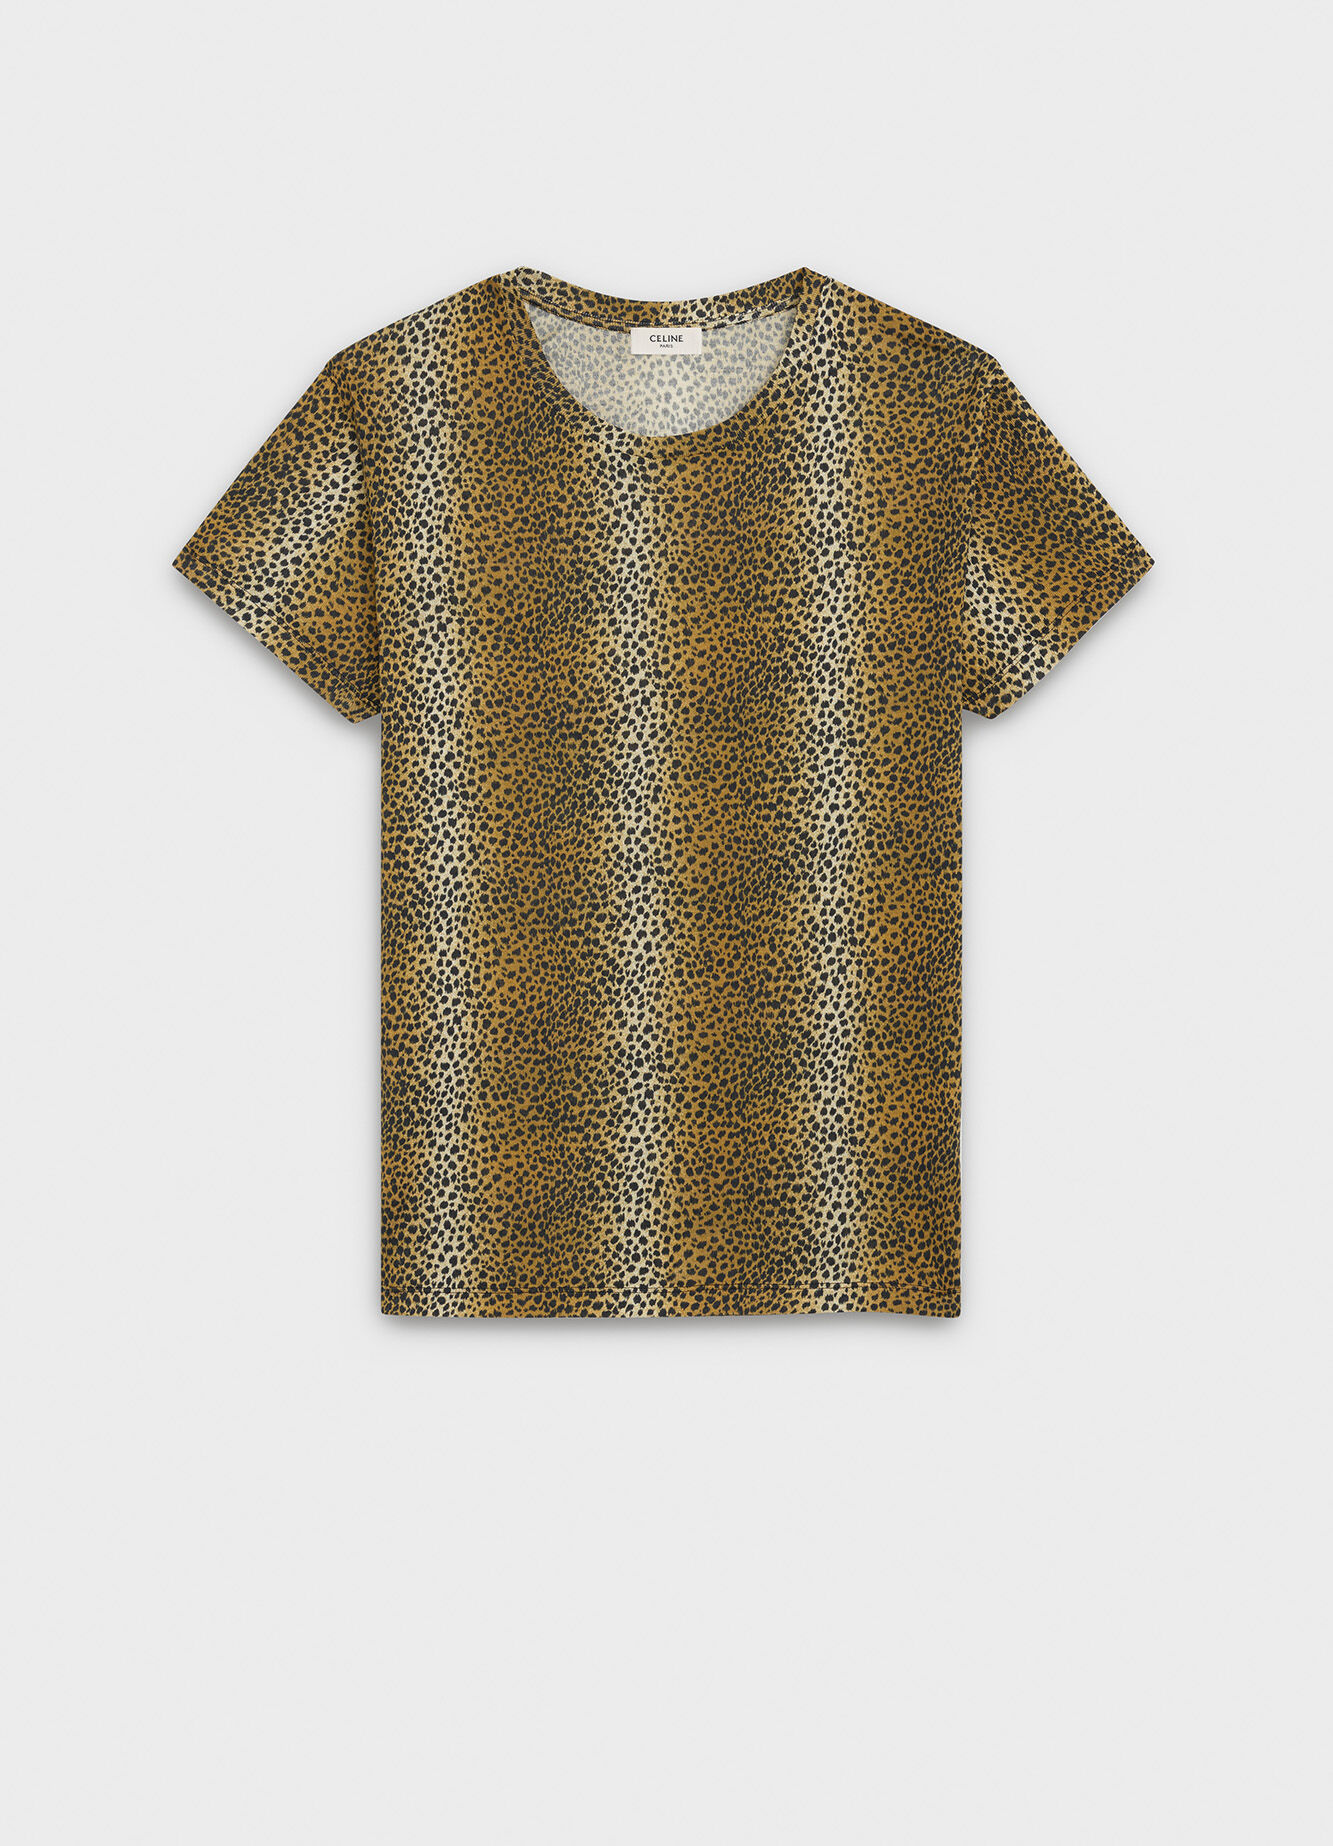 CELINE CLASSIC CREW NECK T-SHIRT IN LEOPARD PRINTED SILK JERSEY